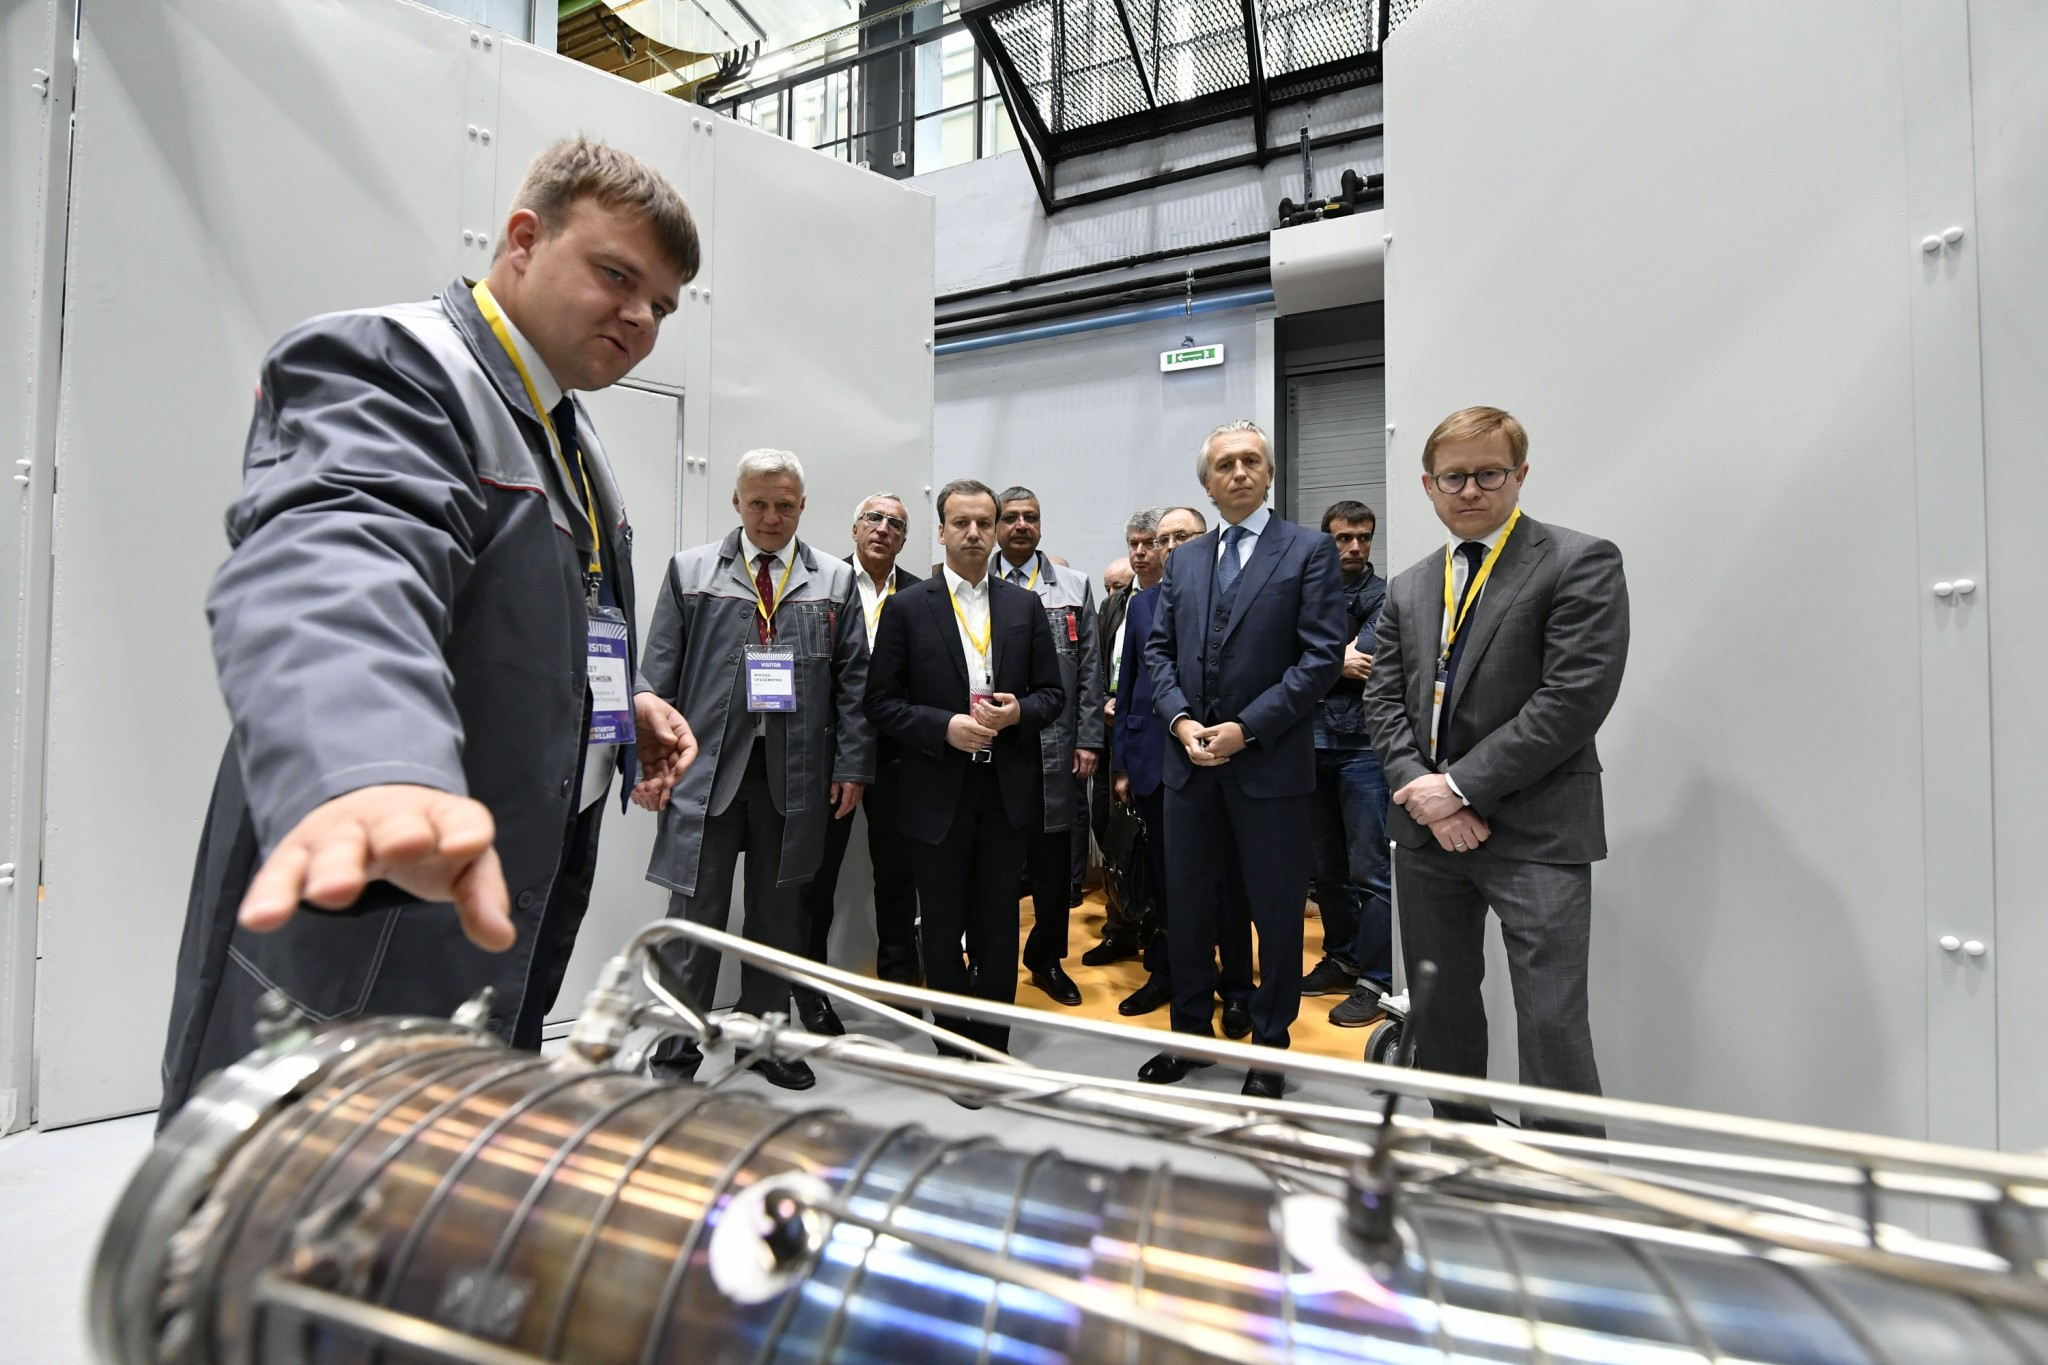 The leaders of Skolkovo, Skoltech and Gazprom Neft join Deputy Prime Minister Arkady Dvorkovich for a tour of Skoltech's new hydrocarbon recovery lab.